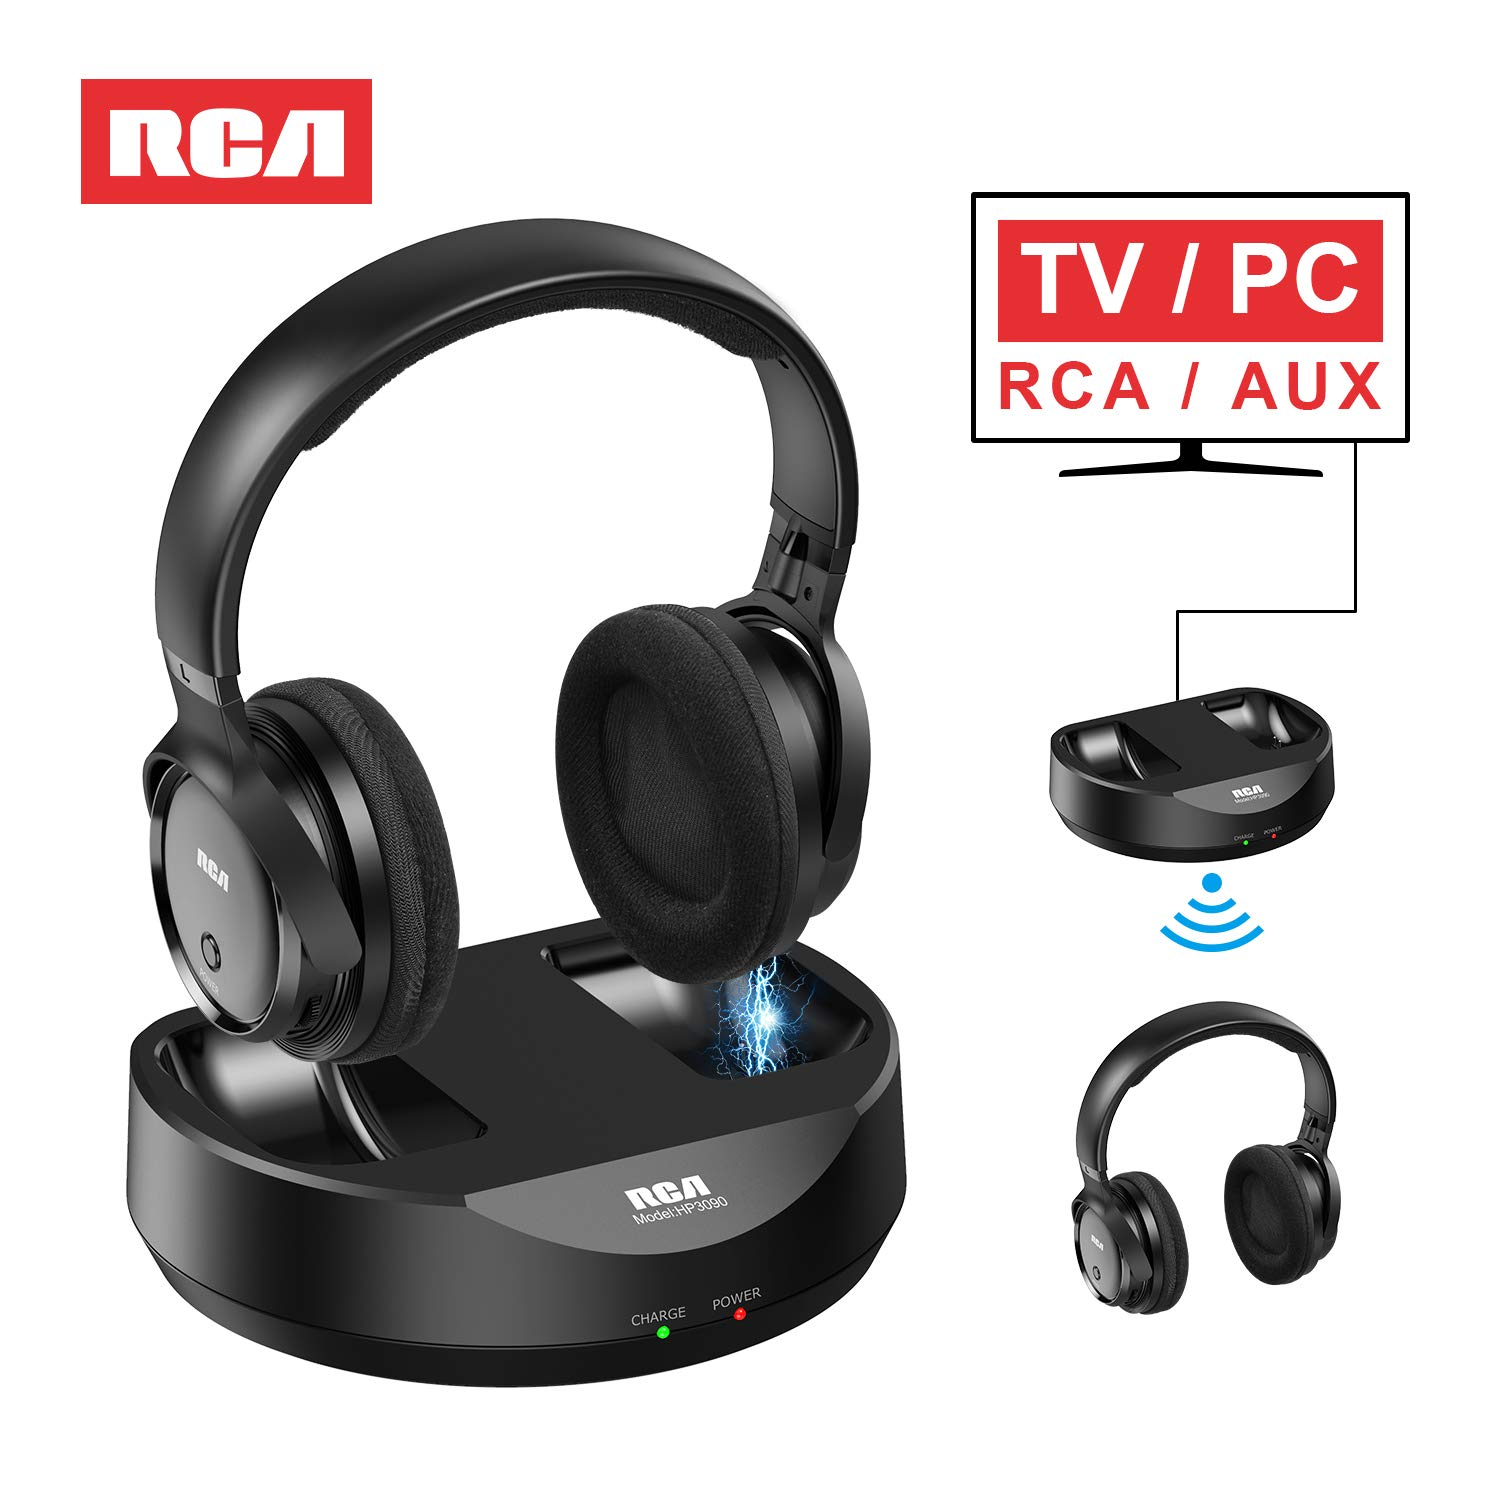 RCA Wireless TV Headphones, Over Ear Headphones for TV Watching, PC Phone MP3 iPod VCD DVD, Headphones for Seniors Hard of Hearing, 148ft/45M Range, Rechargeable and Adjustable by RCA